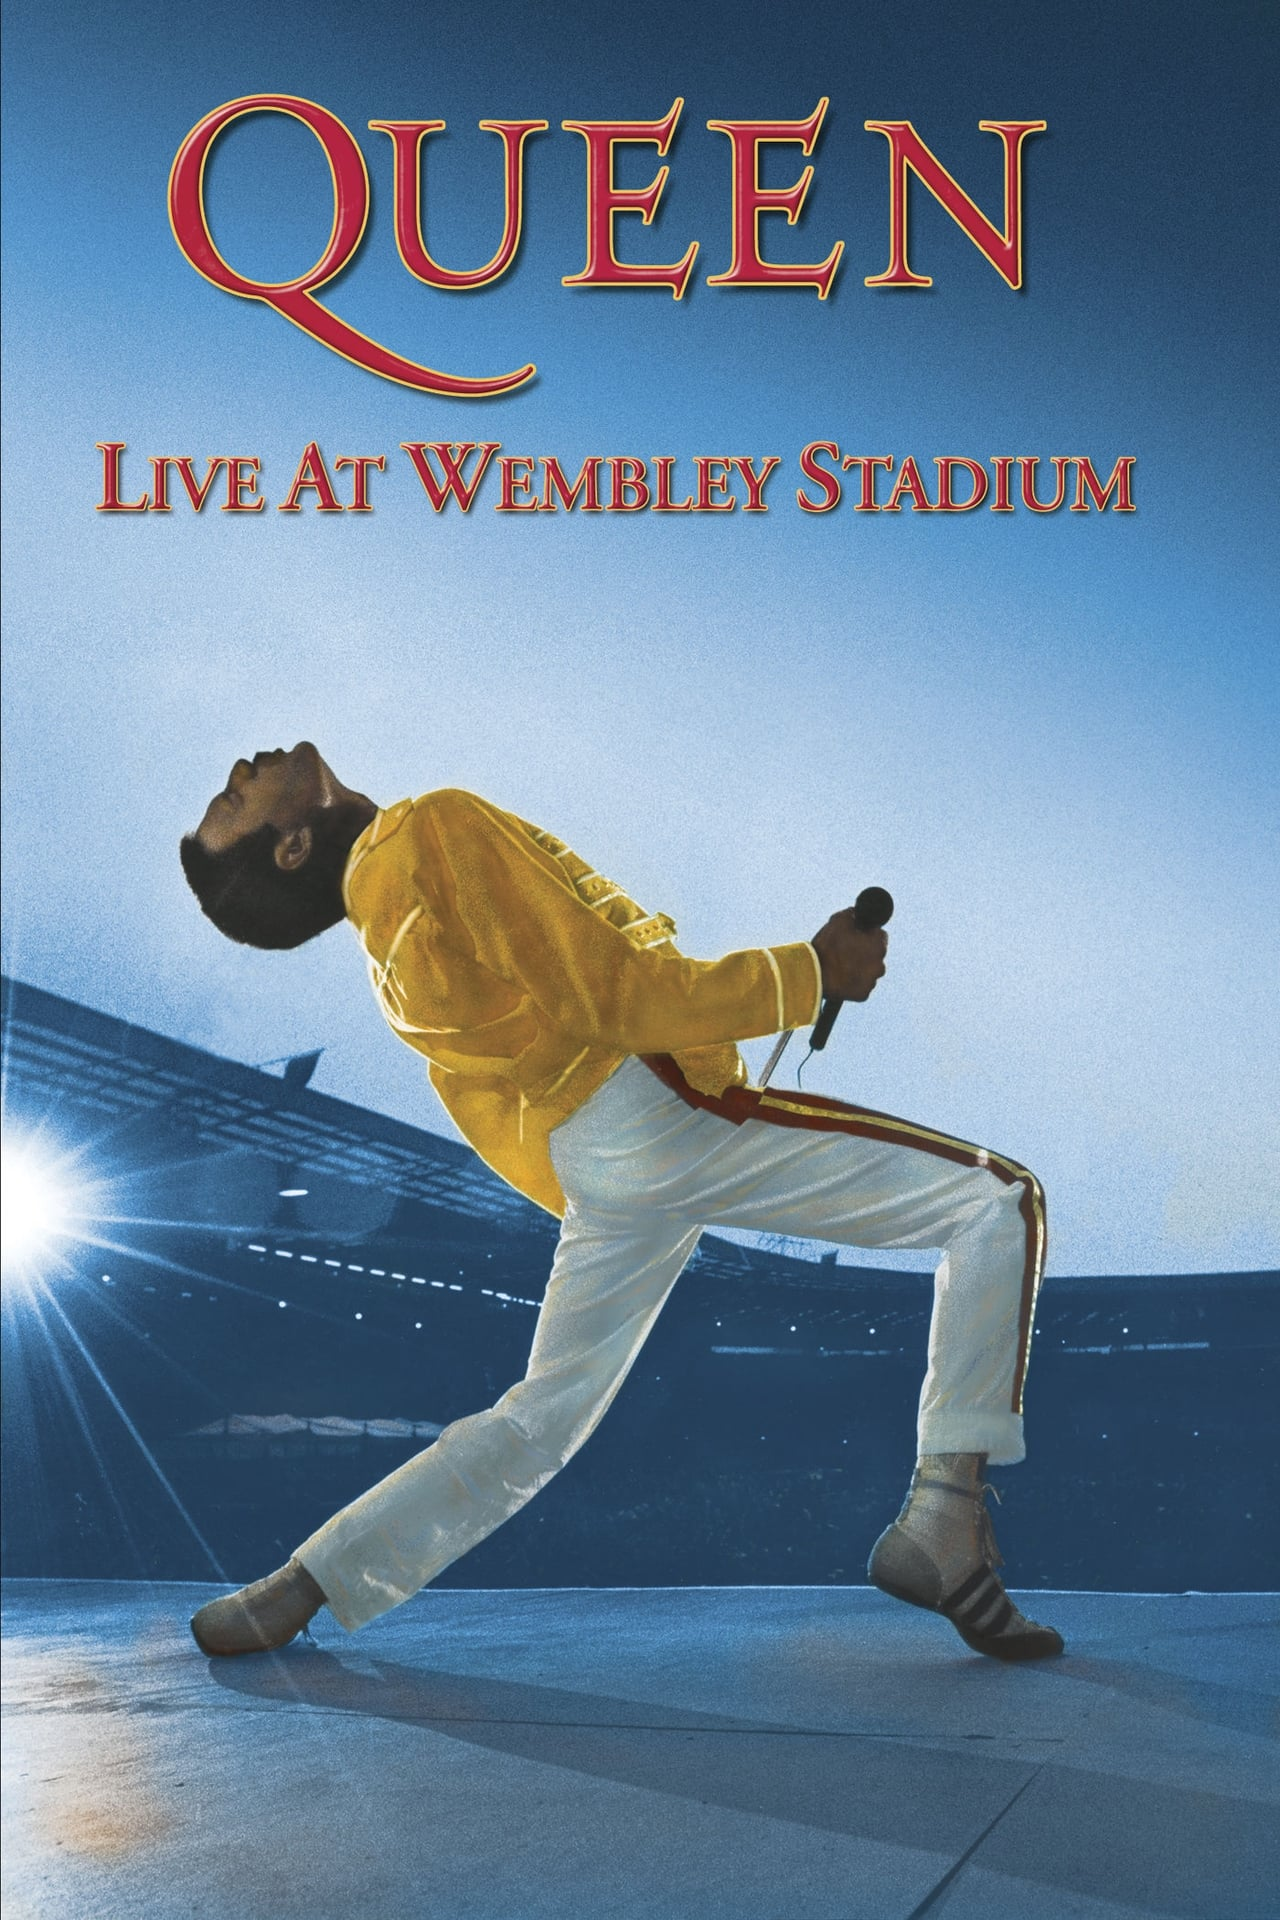 Queen Live at Wembley Stadium